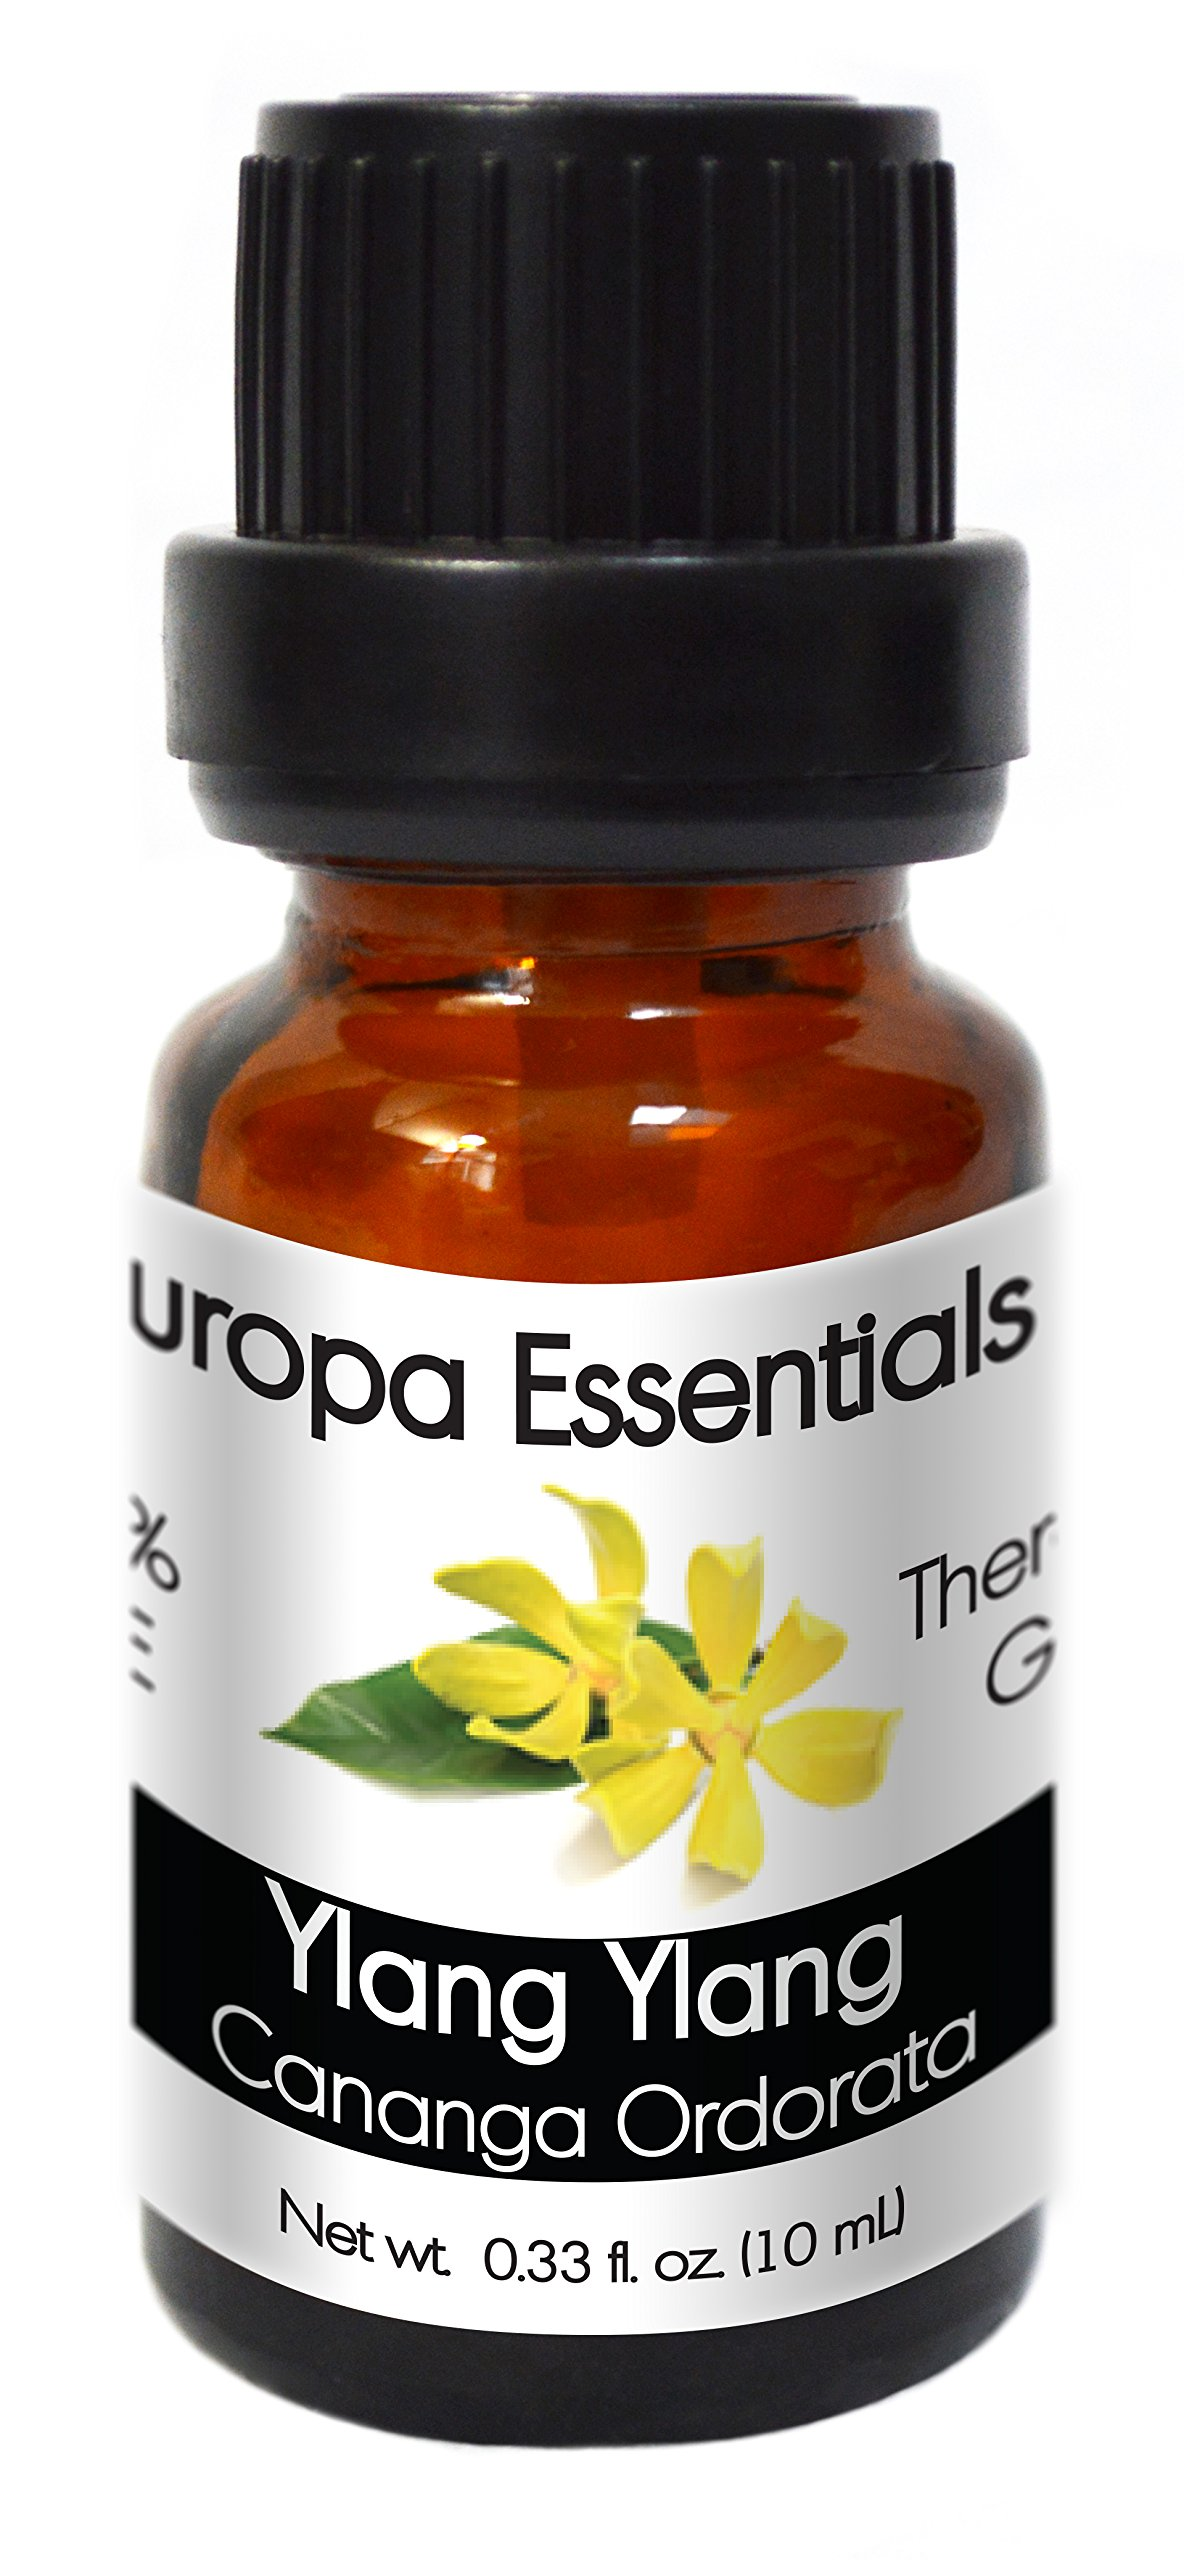 Amazon.com: Europa Essentials 100% Pure Therapeutic Grade Essential Oils, 36 Aromatherapy Scents Collection – Ylang Ylang, 10ml: Health & Personal Care